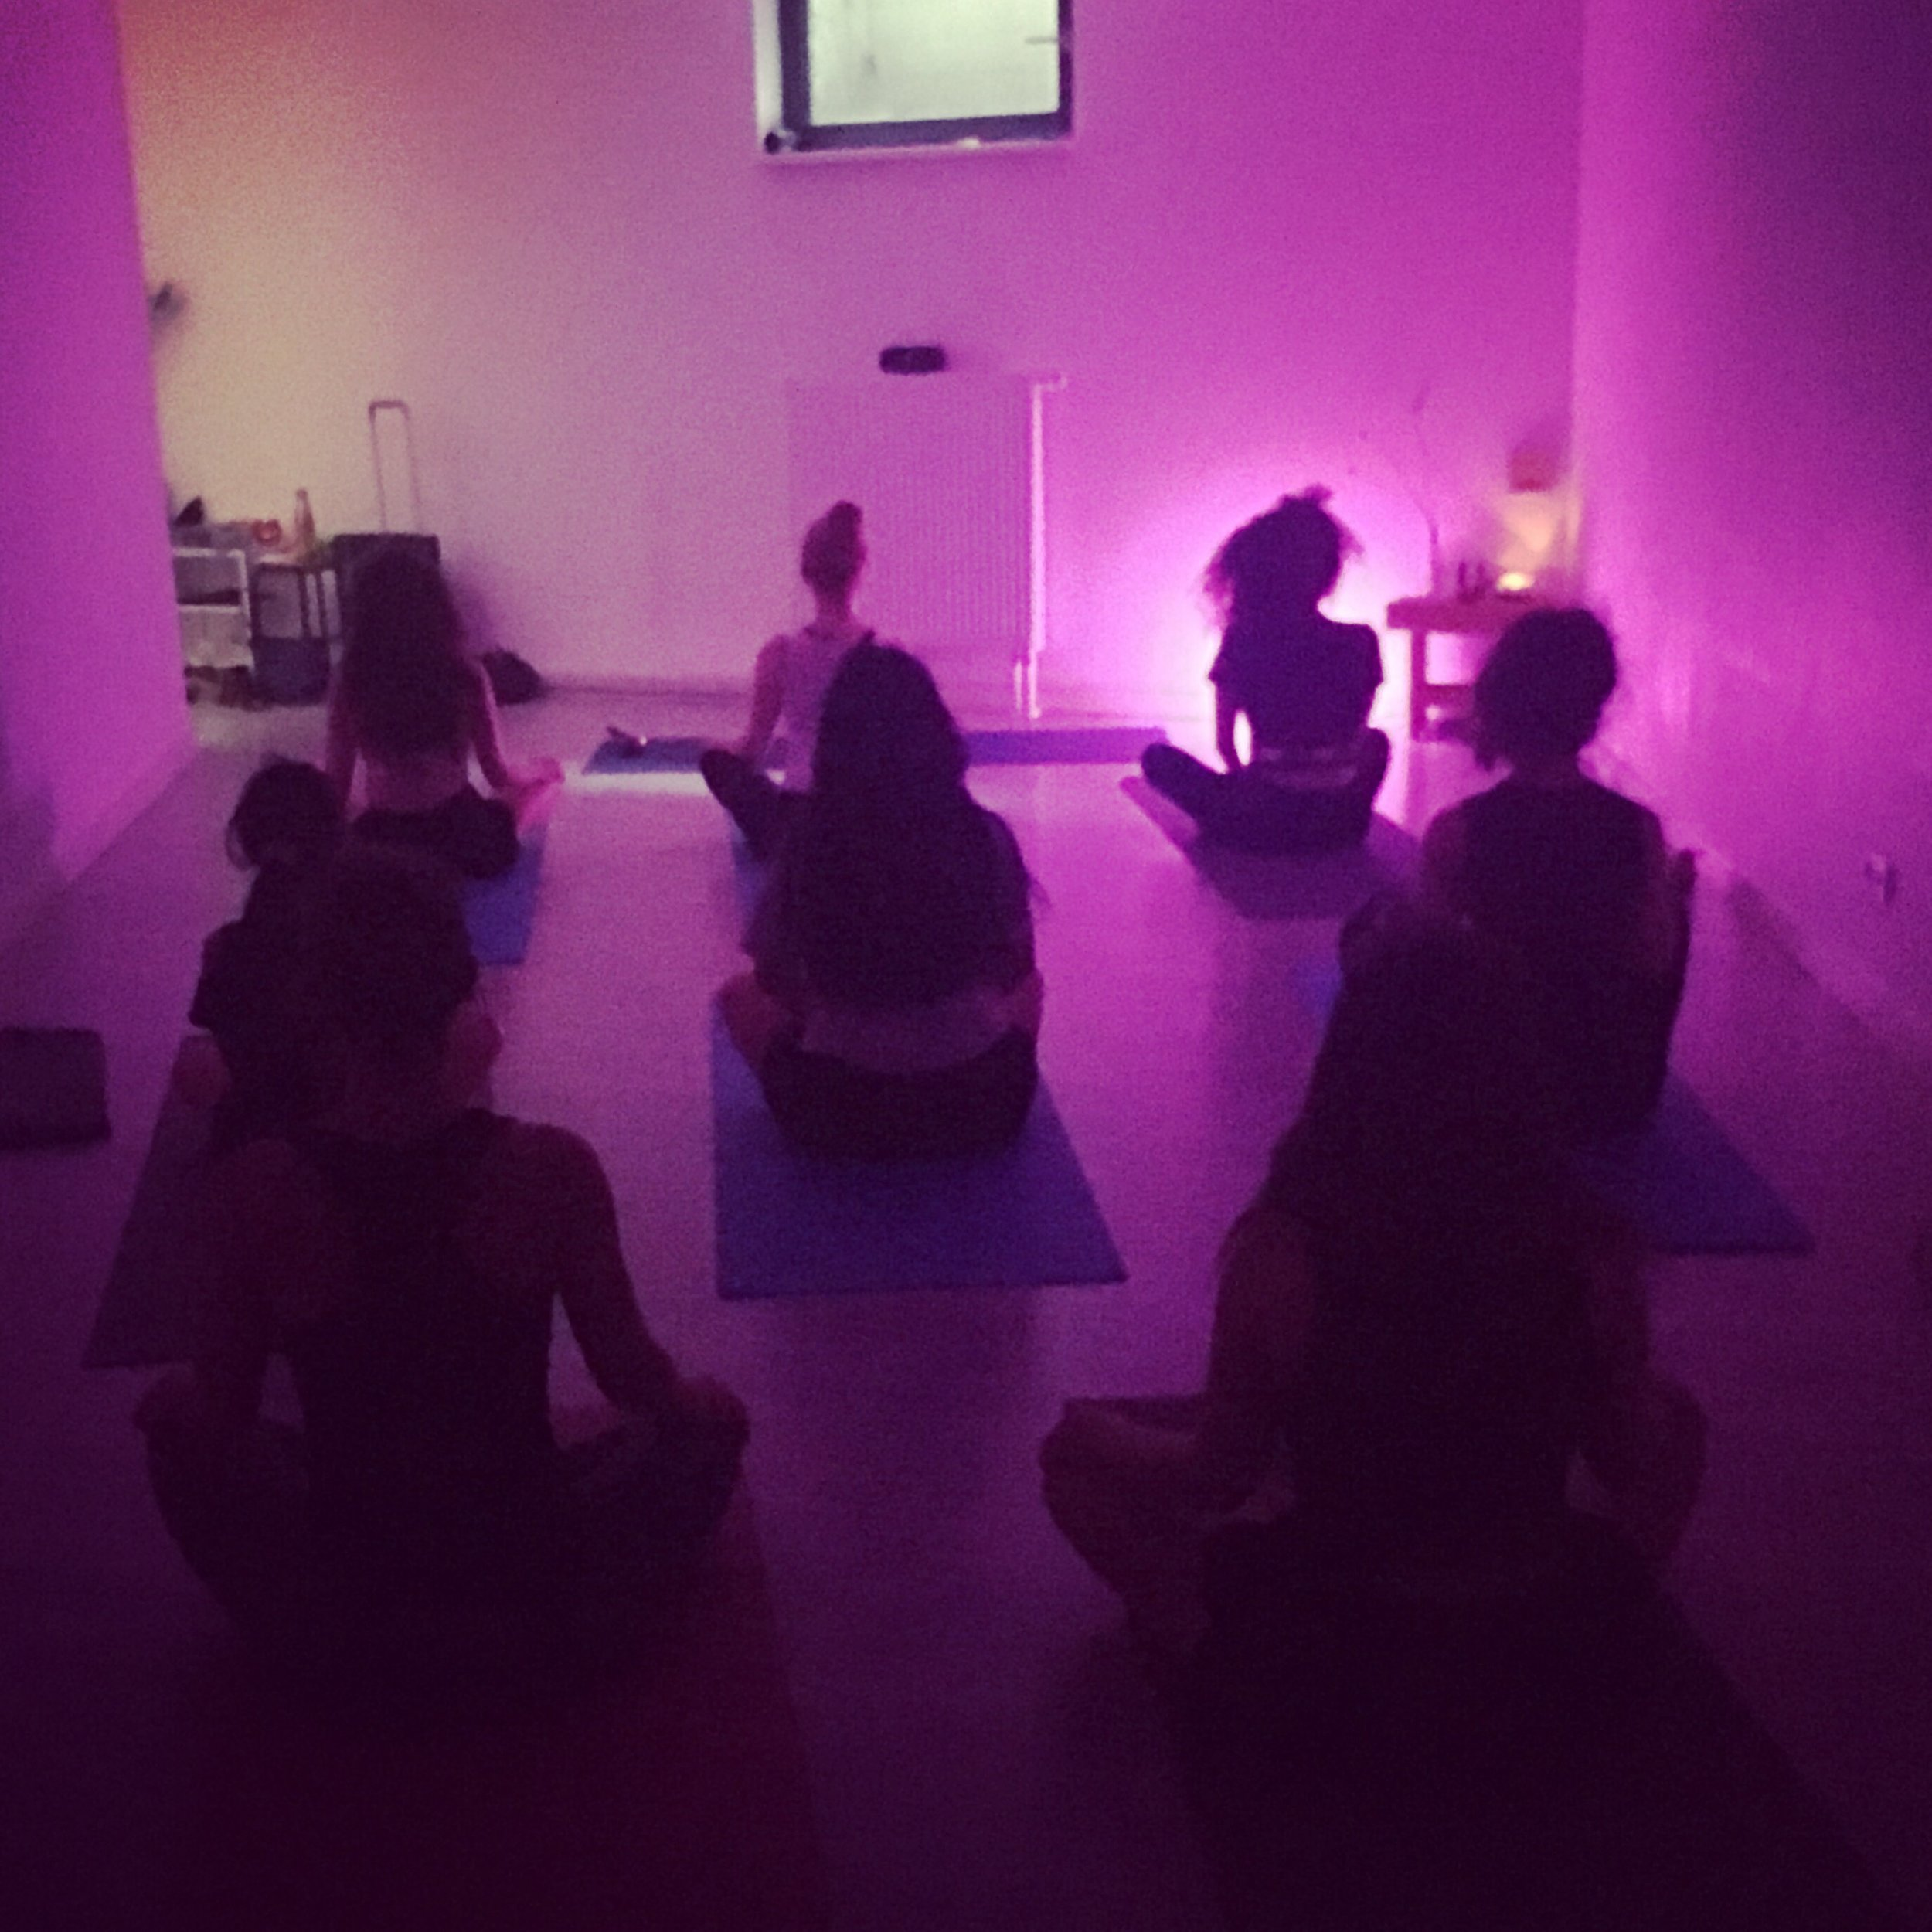 Yoga students in lotus pose on their mat in a dark room with purple light at Unknown Yoga Club Berlin with Rebecca Sunshine.